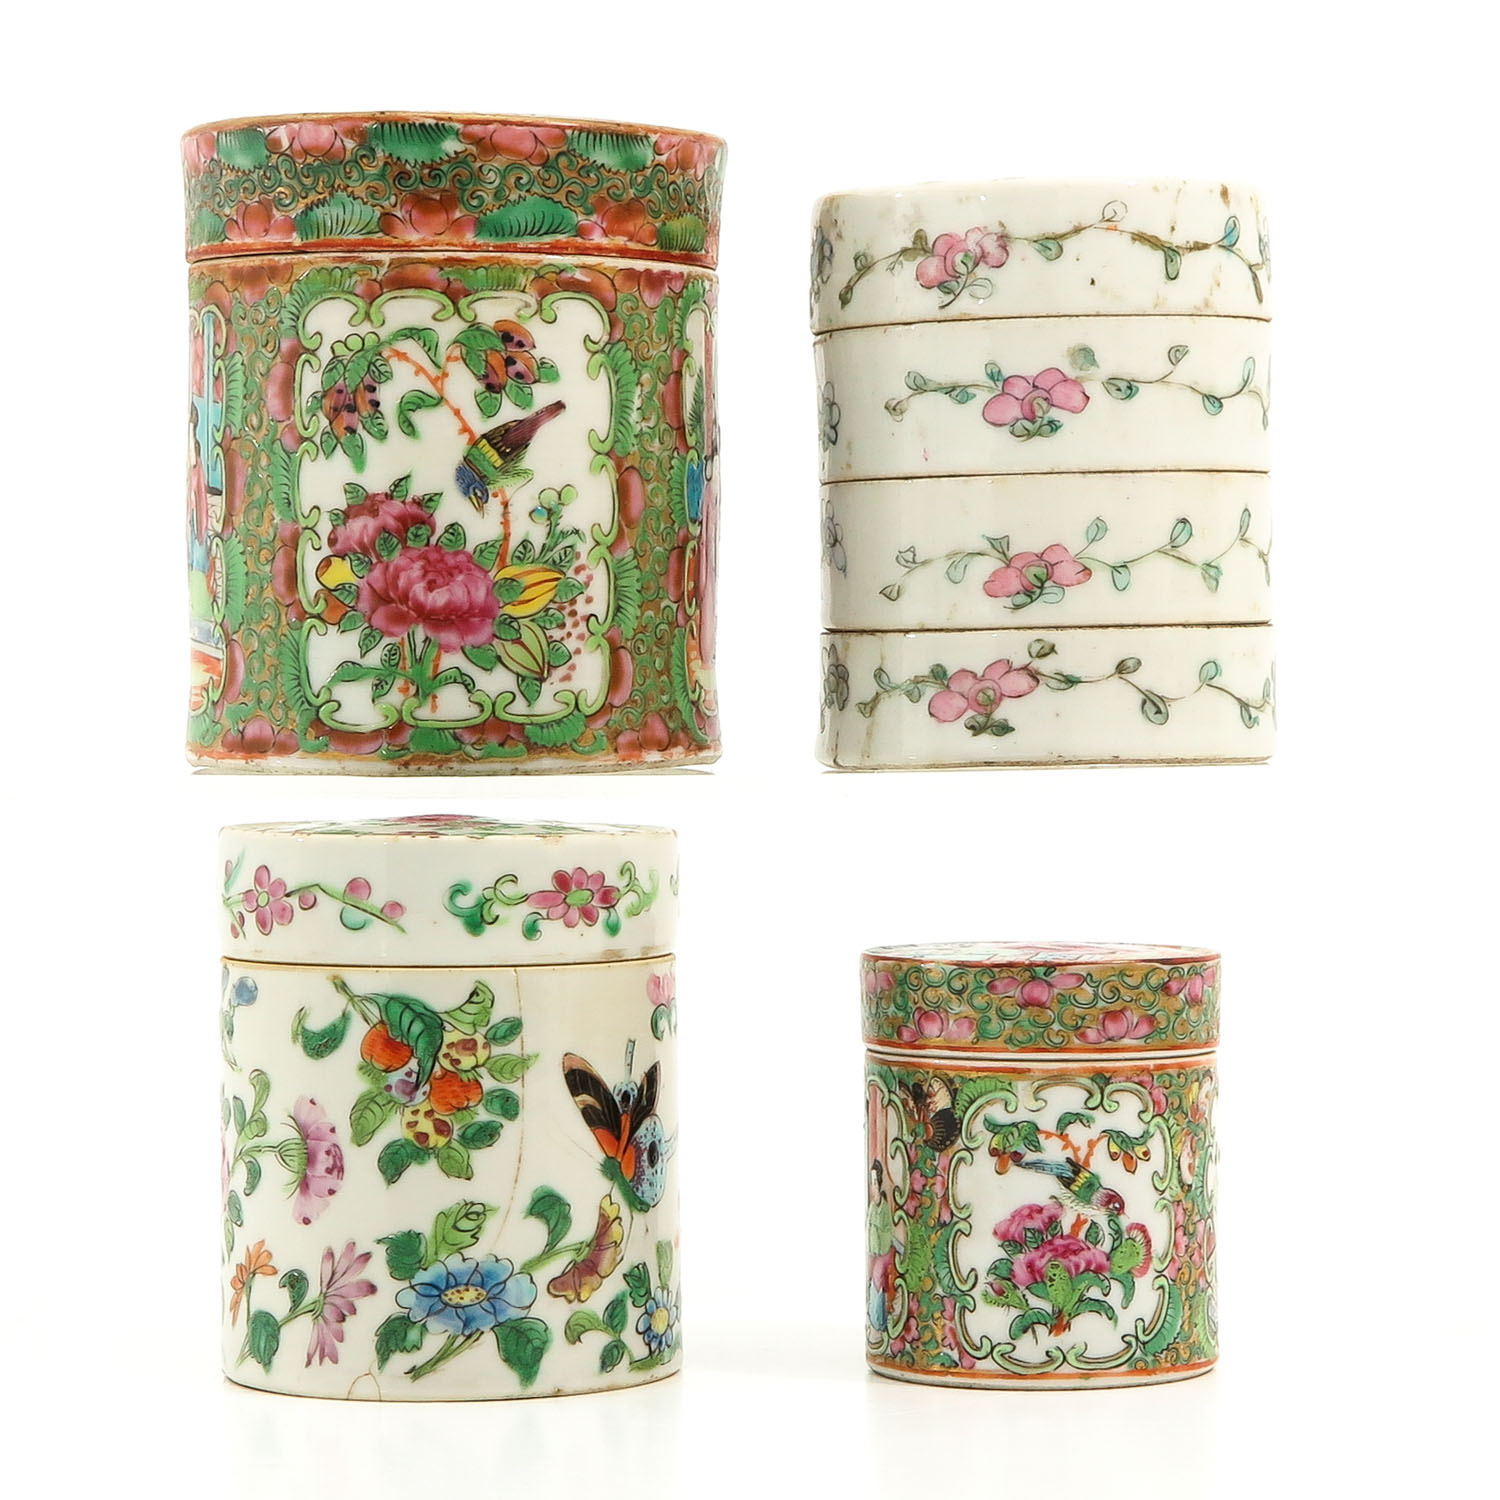 A Collection of 4 Chinese Boxes - Image 2 of 10